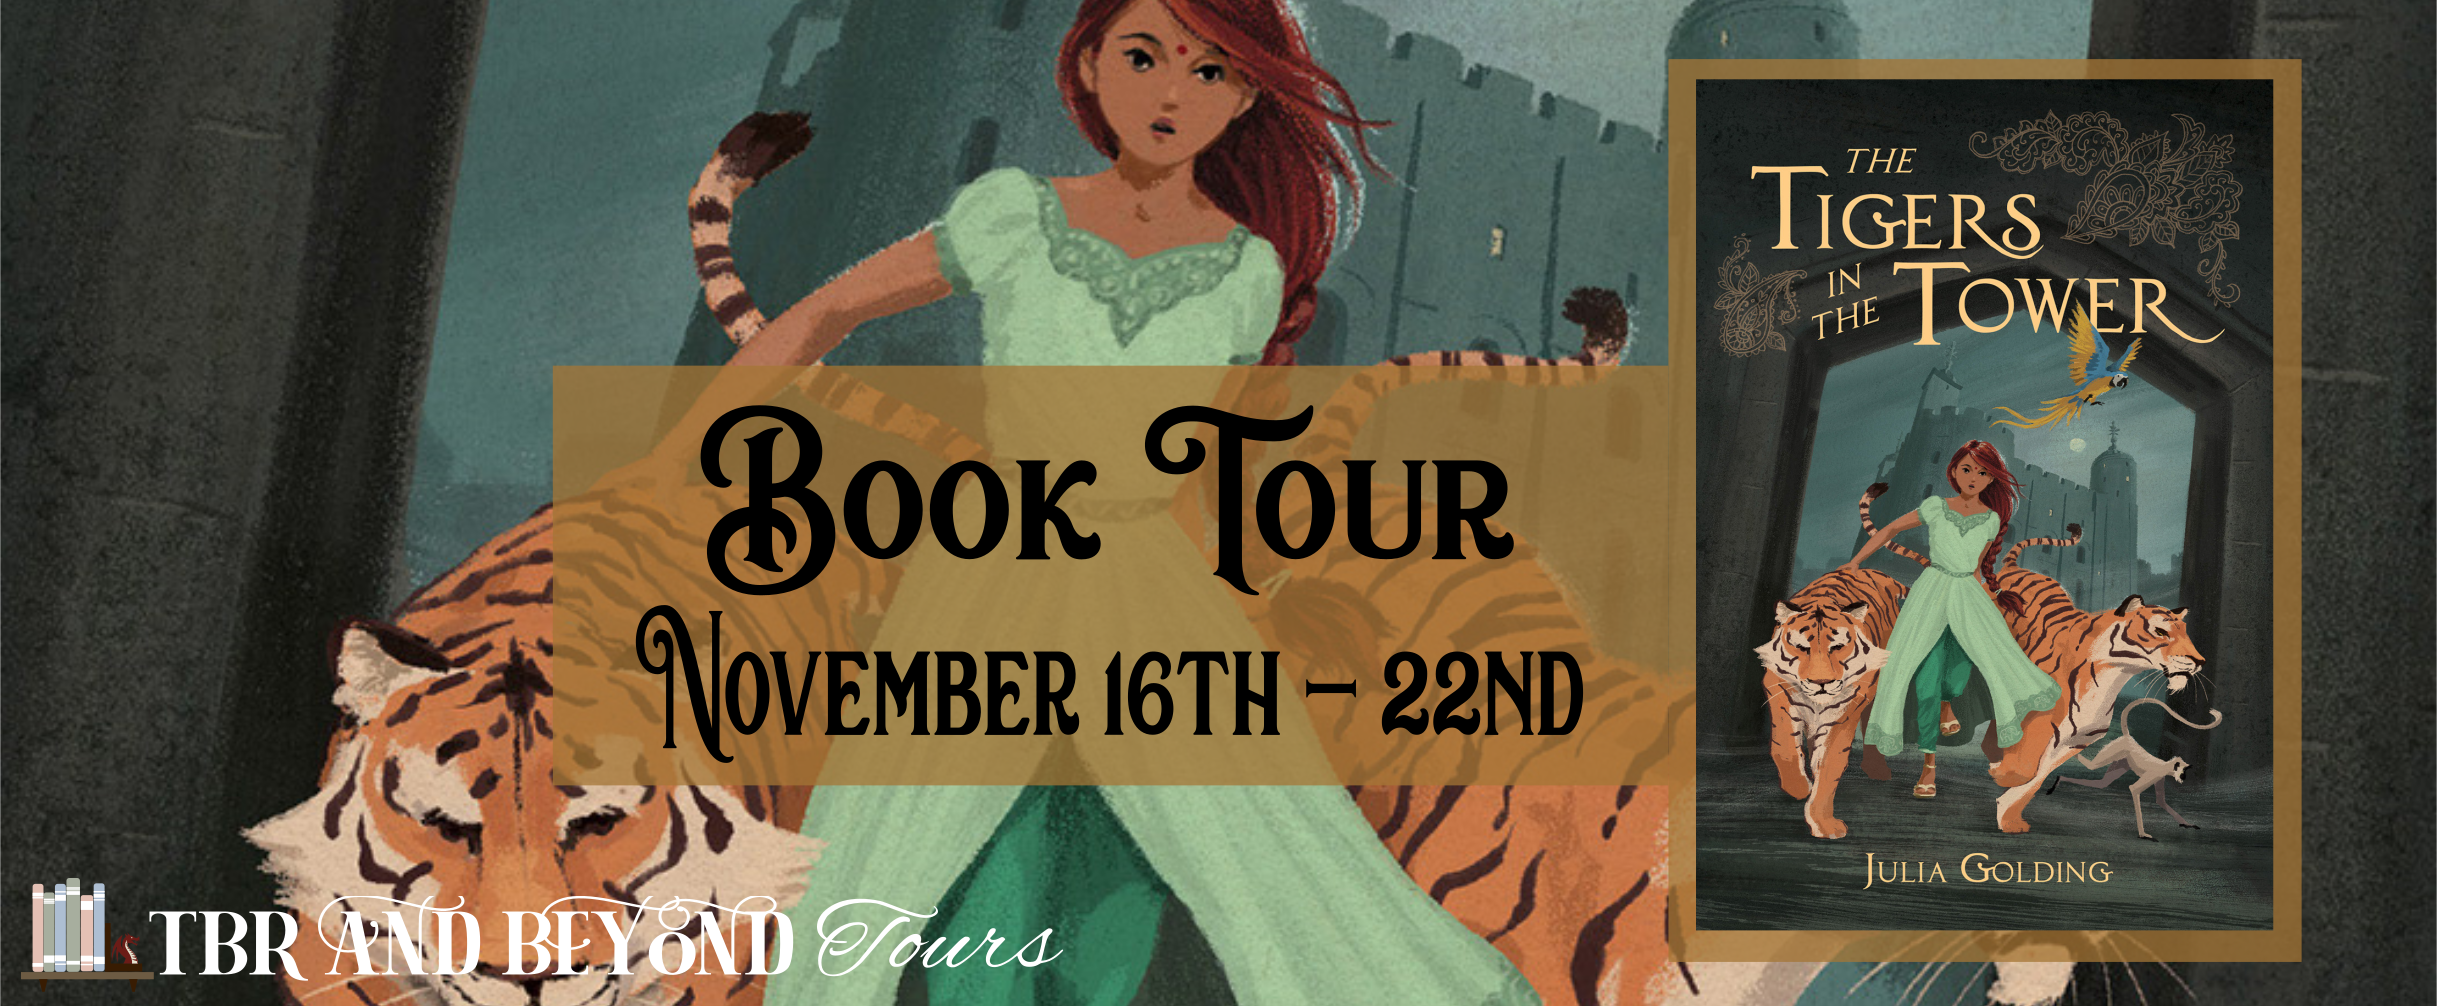 Blog Tour: Tigers in the Tower by Julia Golding (Spotlight + Giveaway!)